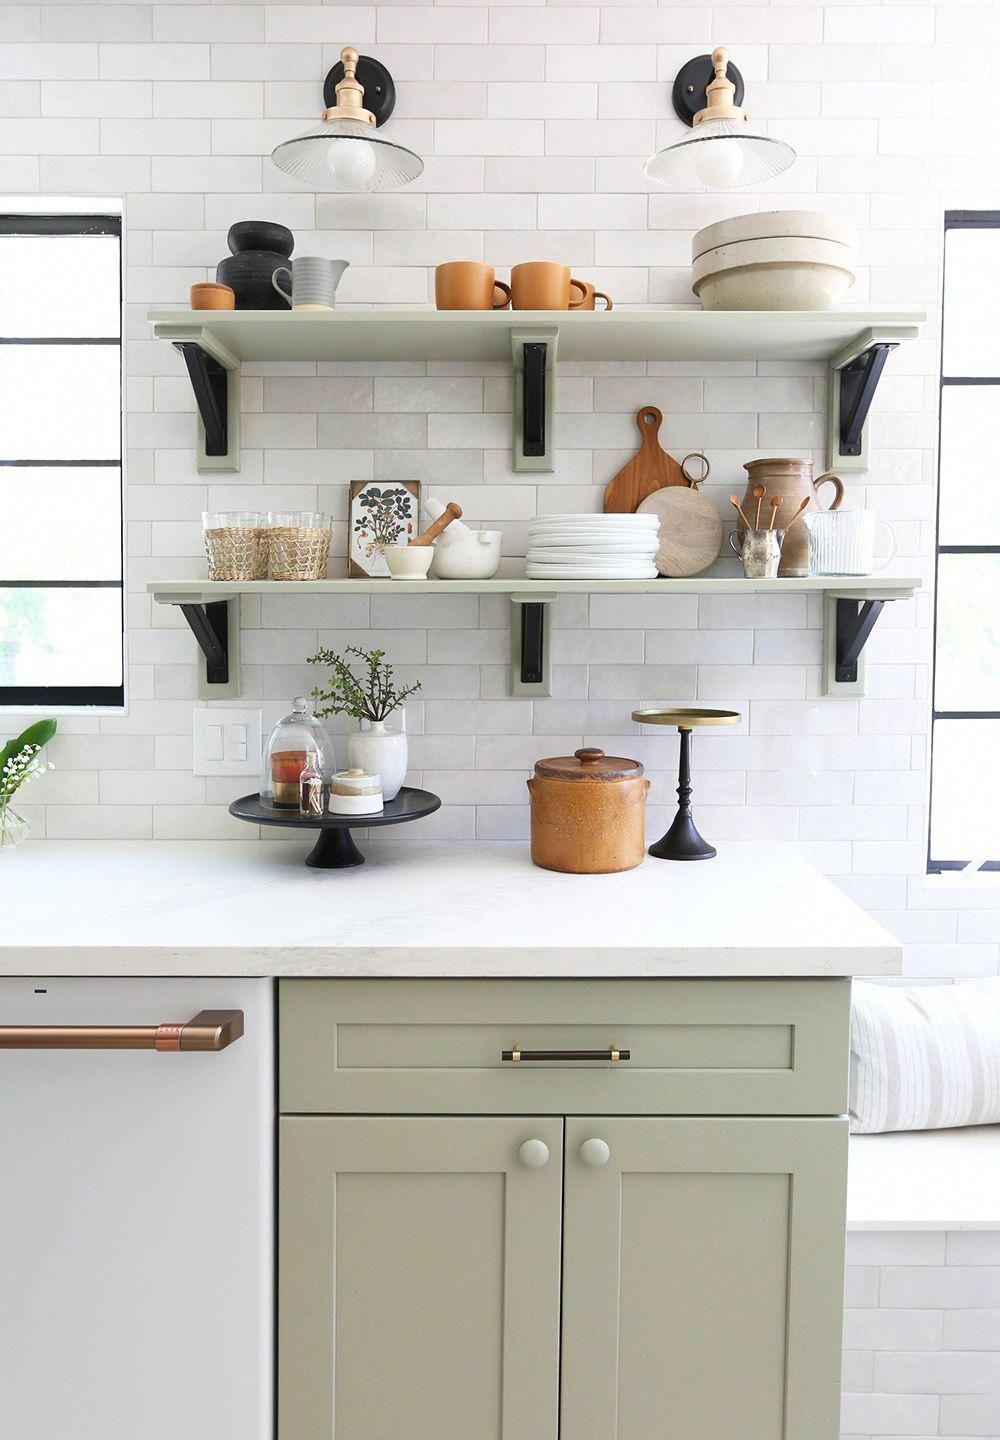 My final tip is to save some room in your kitchen reno budget for pretty organizational items and ac... - #budget #final #items #kitchen #organizational #pretty - #MotorizedBlindsLowes